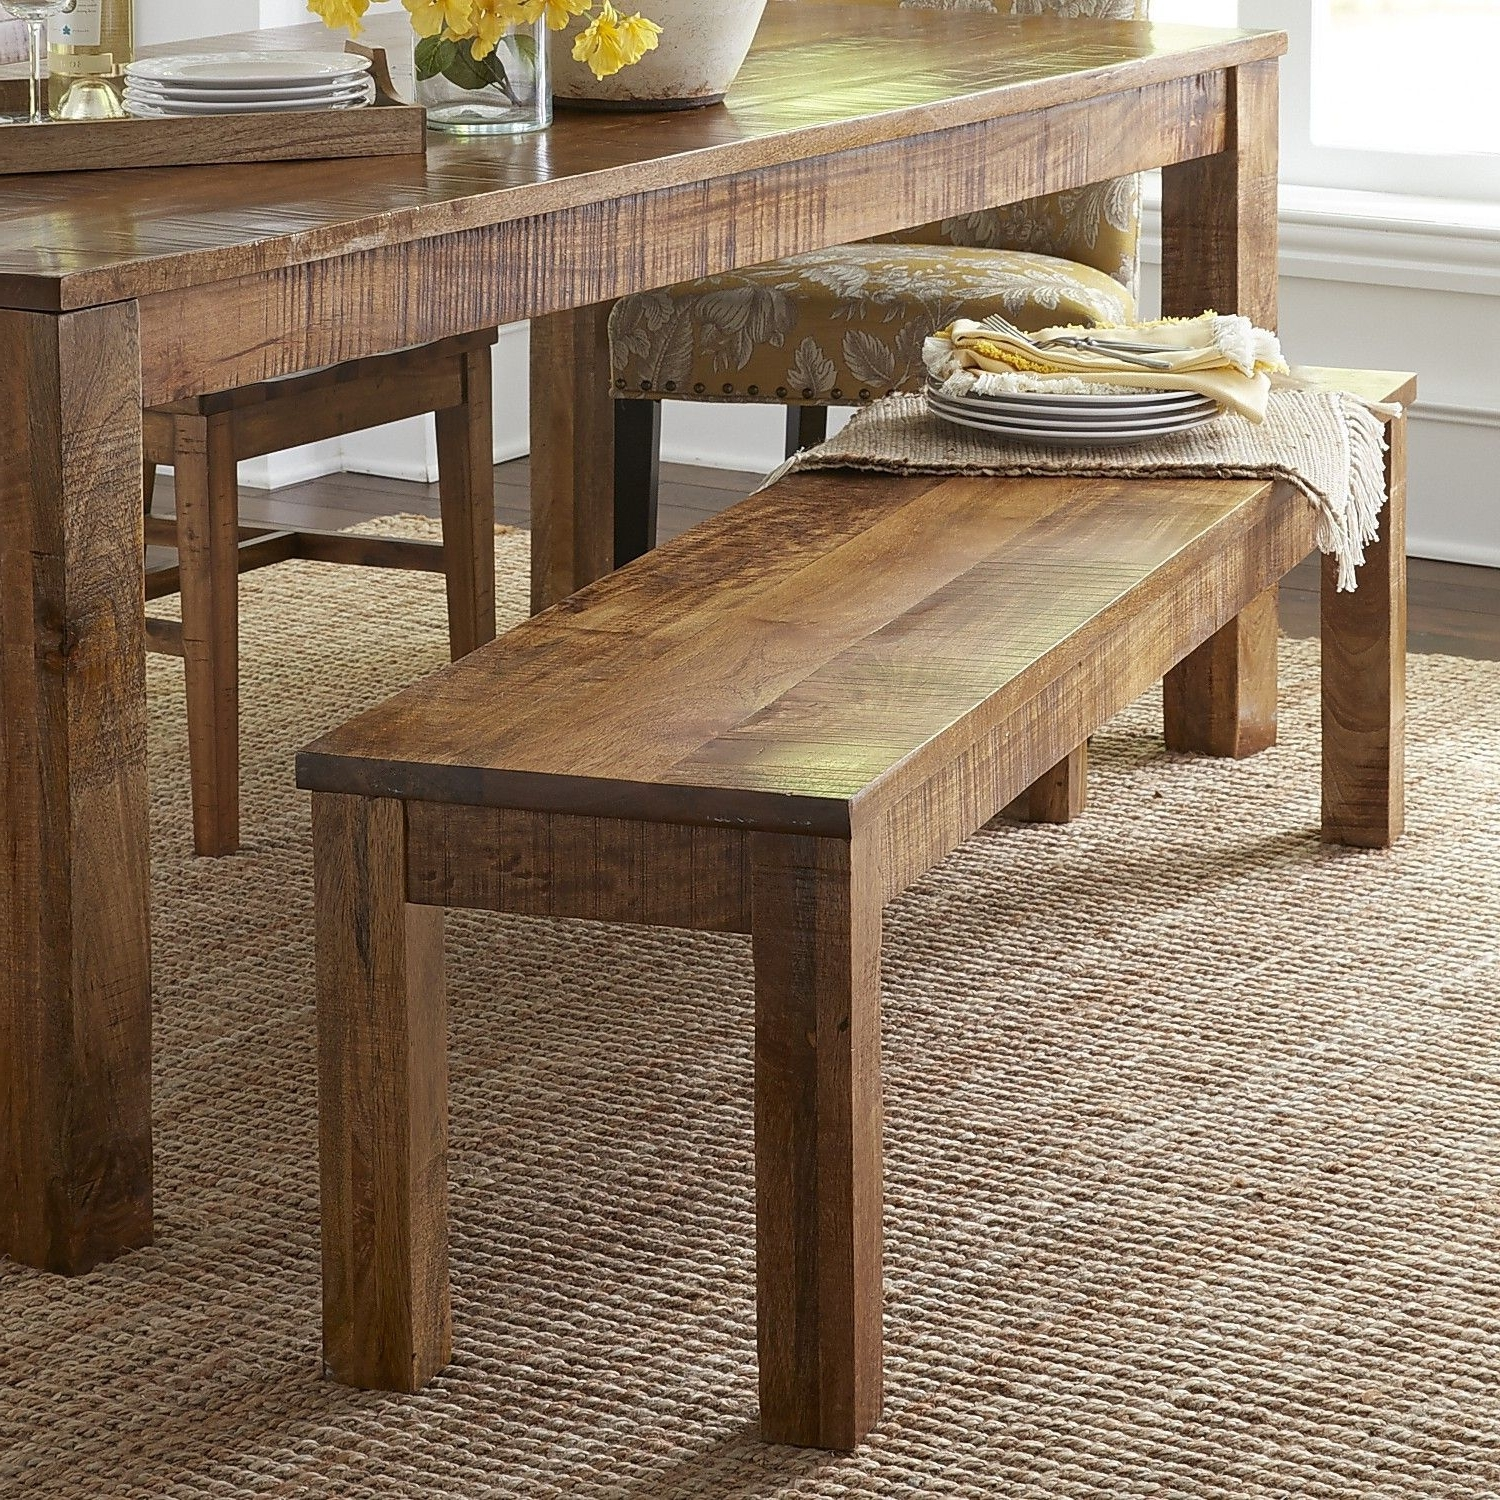 Java Dining Tables Regarding Well Known Parsons Java Dining Bench (View 10 of 25)